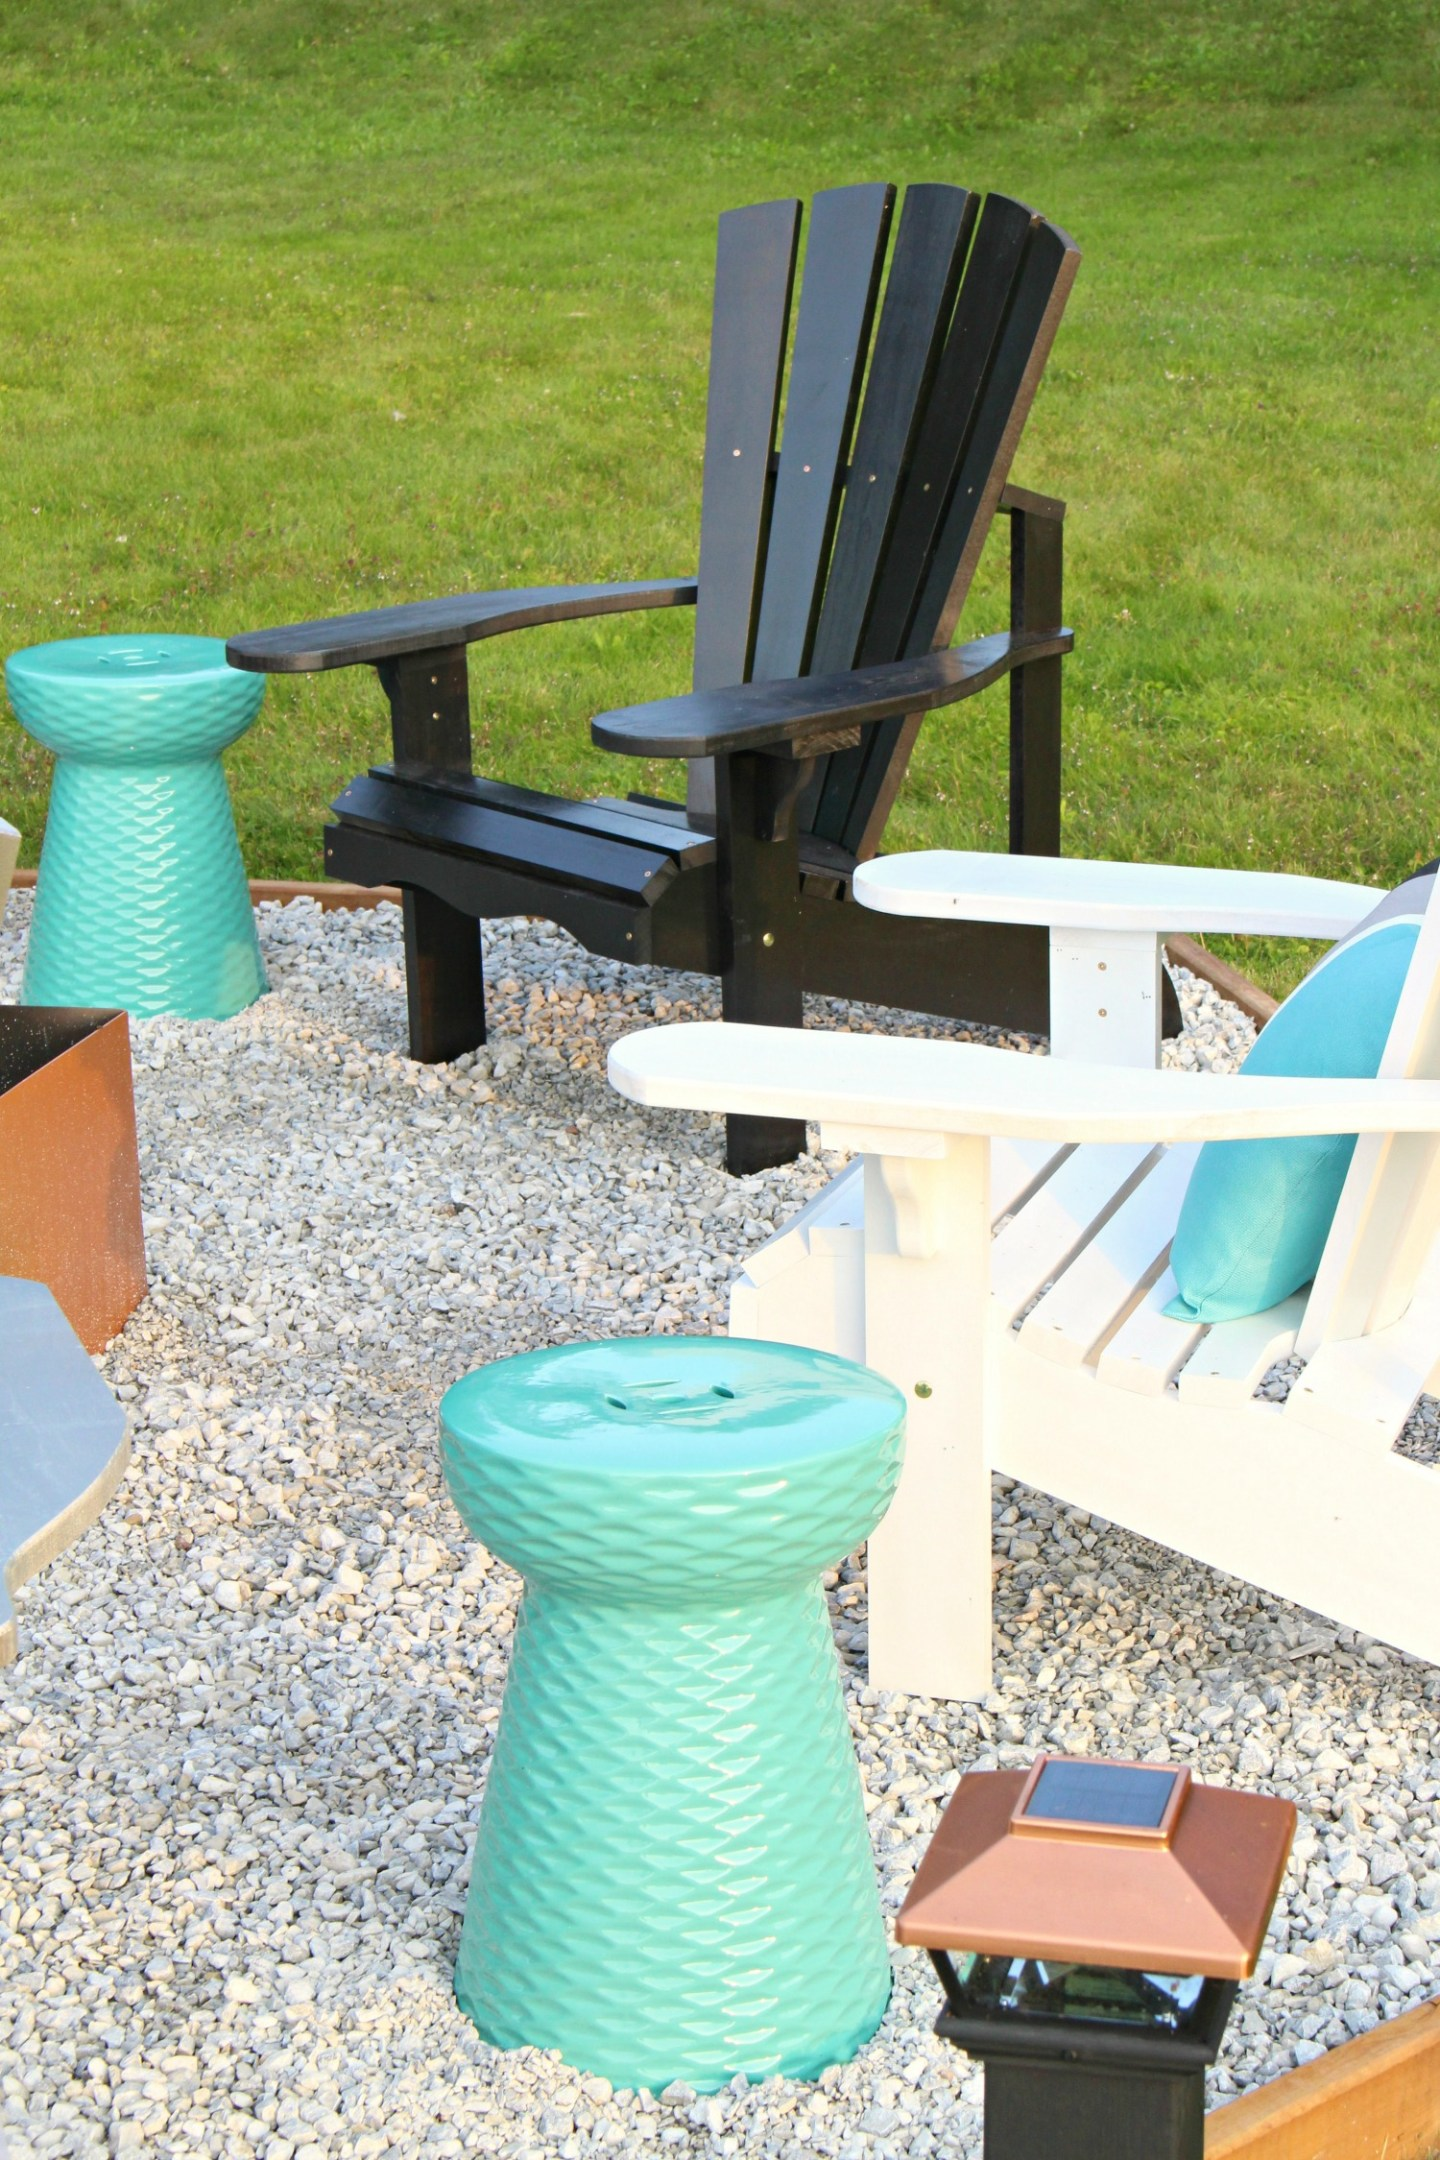 Coastal Fire Pit Makeover + DIY Ombre Adirondack Chairs (Sponsored by The Home Depot Canada)